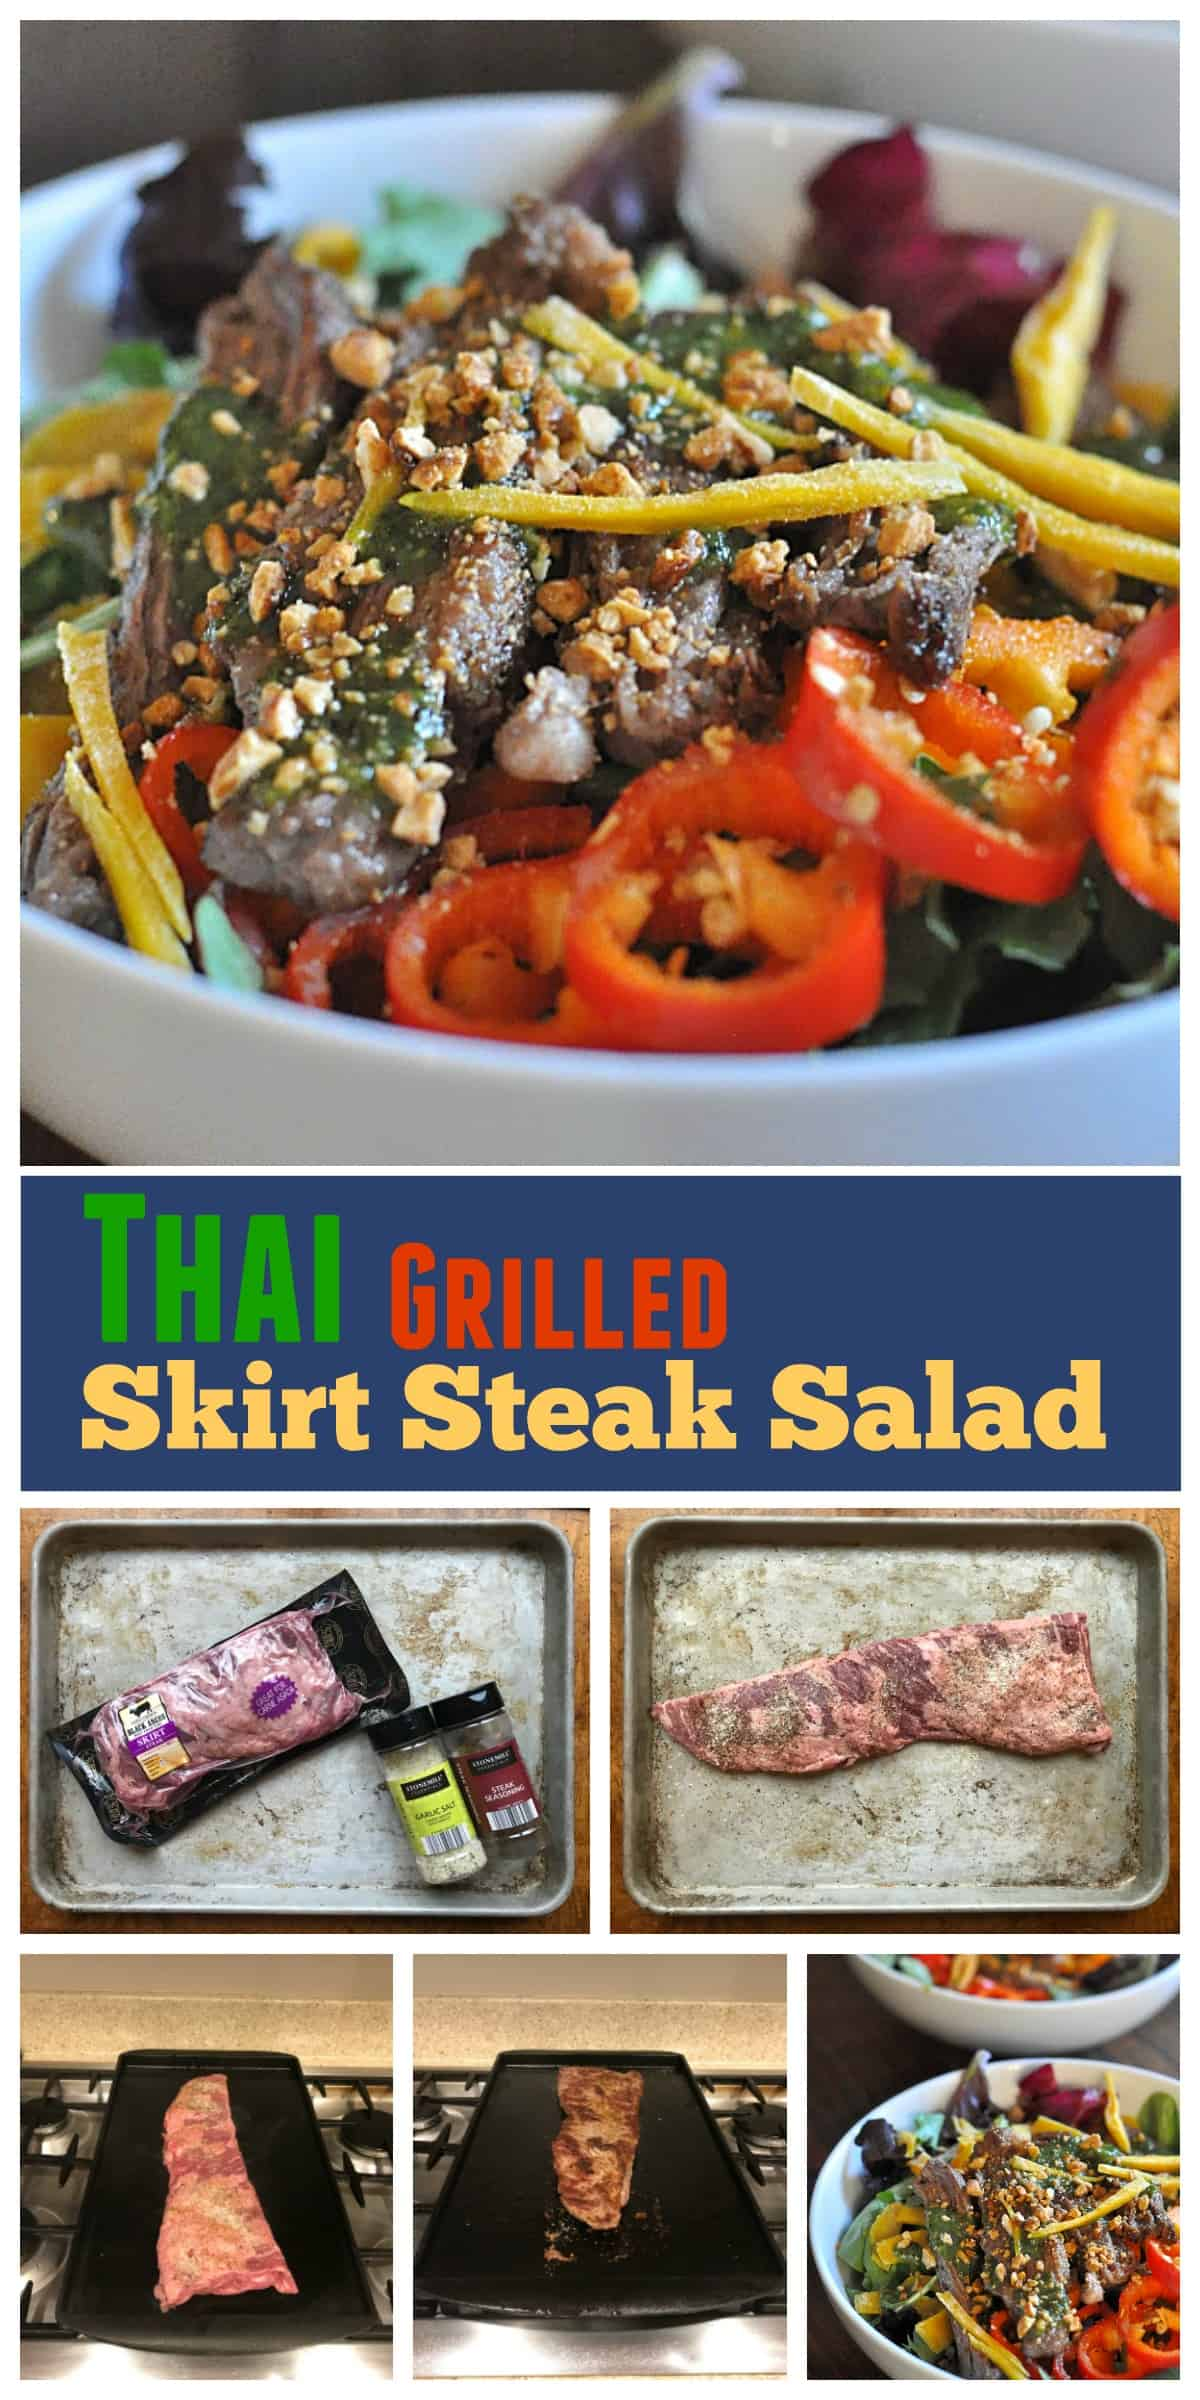 Easy Thai Steak Salad recipe made with seasoned grilled Skirt Steak, a sweet cilantro sauce, and tossed with mango, peppers, honey peanuts, fresh mint, and your favorite mixed greens!